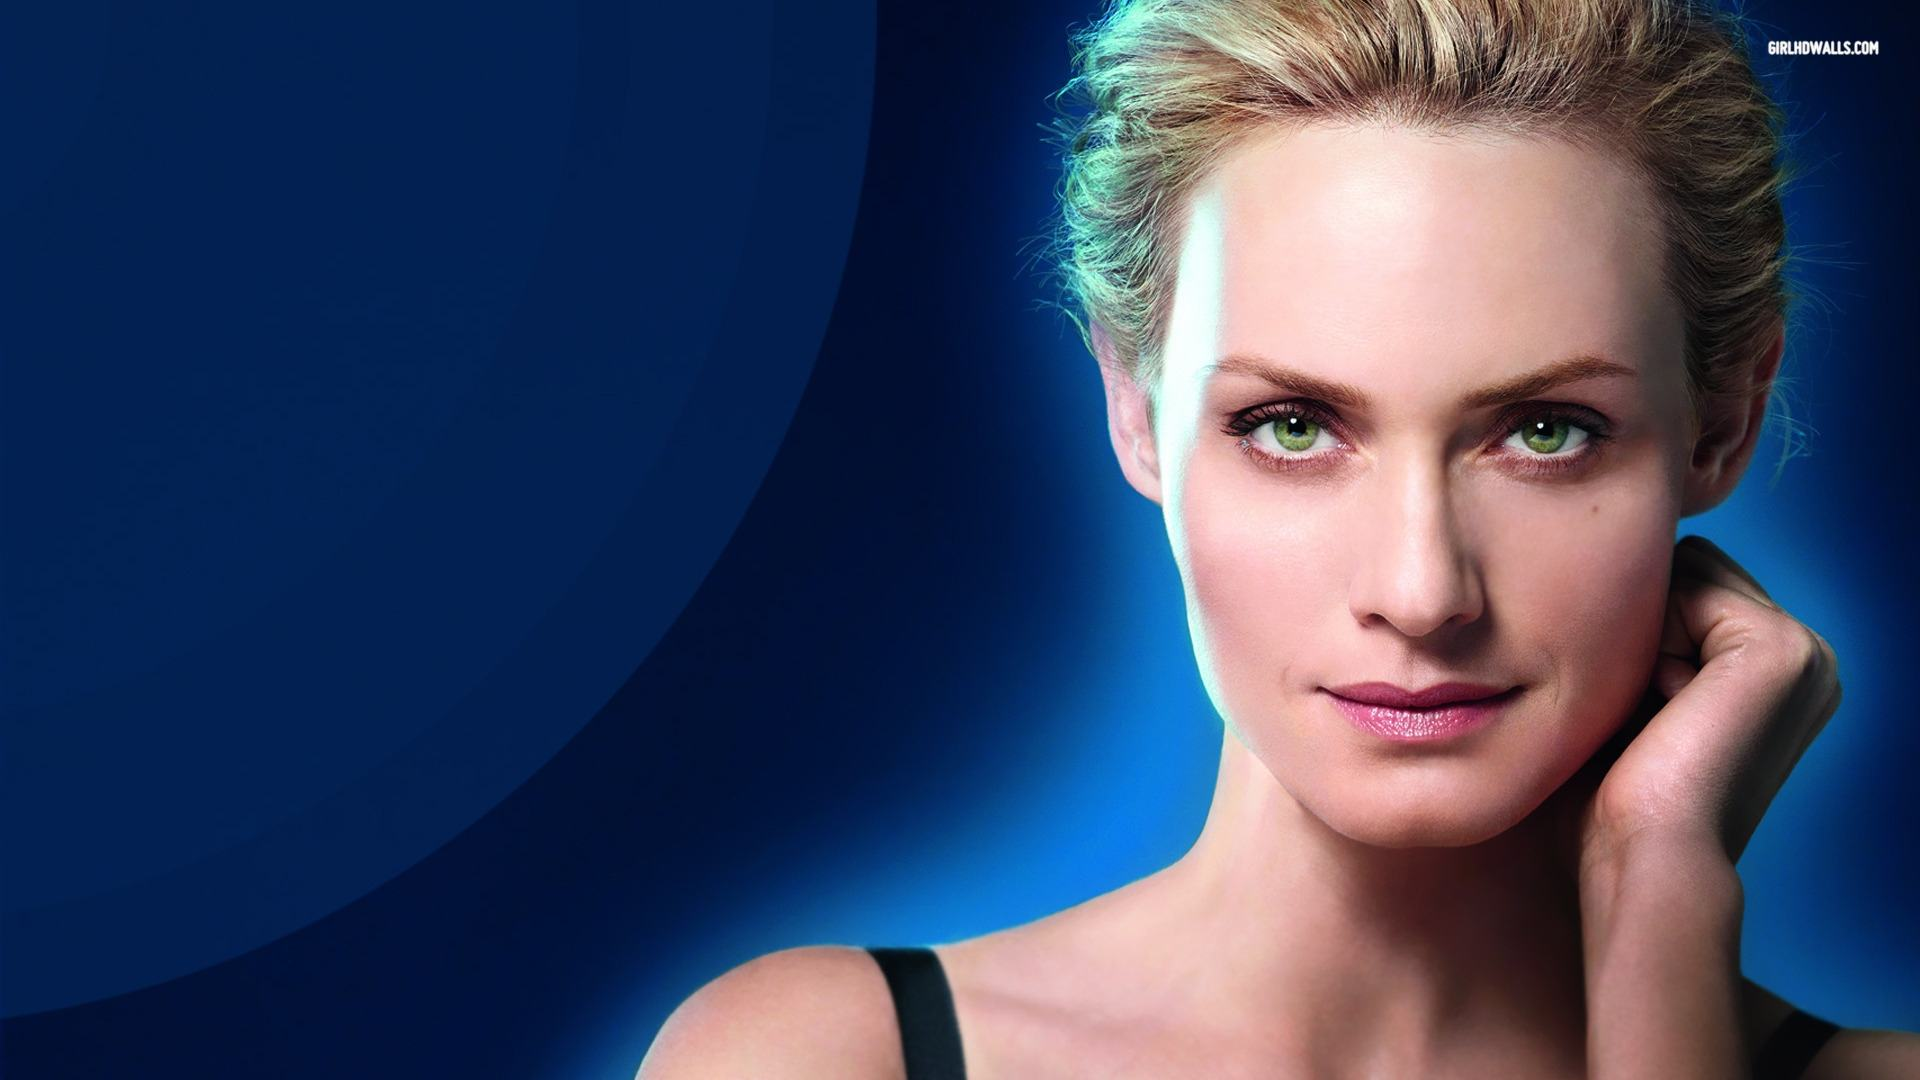 Wallpapers Backgrounds   Amber Valletta Wallpaper 1920x1080 1920x1080